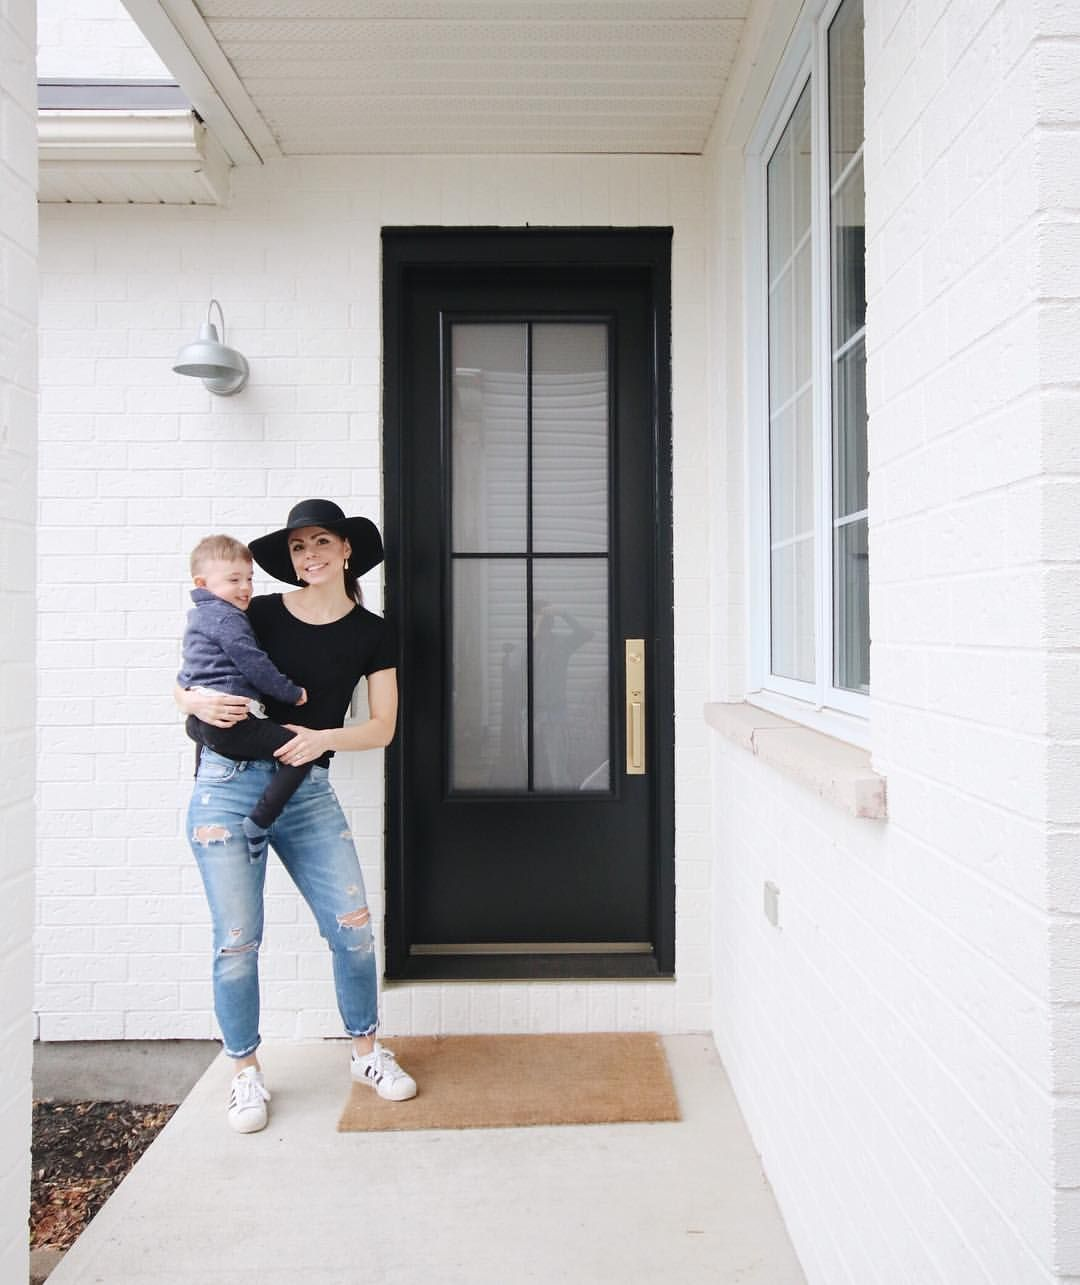 Guys We Re Absolutely In Love With Our New Front Door We Re So Happy We Ended Up Going With The Schoolhouse Brass Hardware A Happy We Guys Instagram